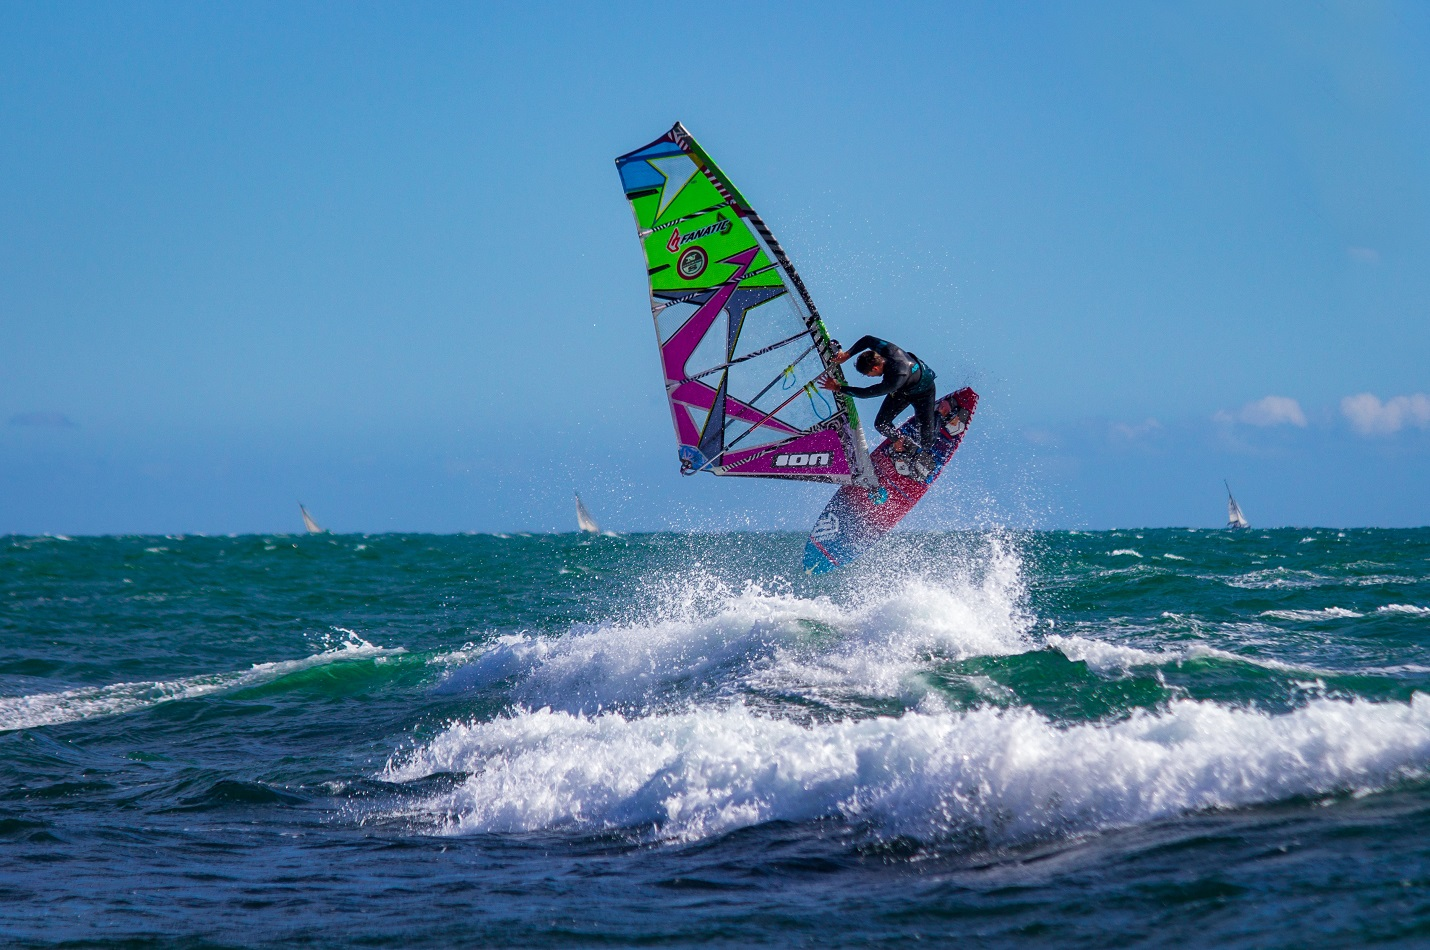 man jumping above a wave with its purple windsurf